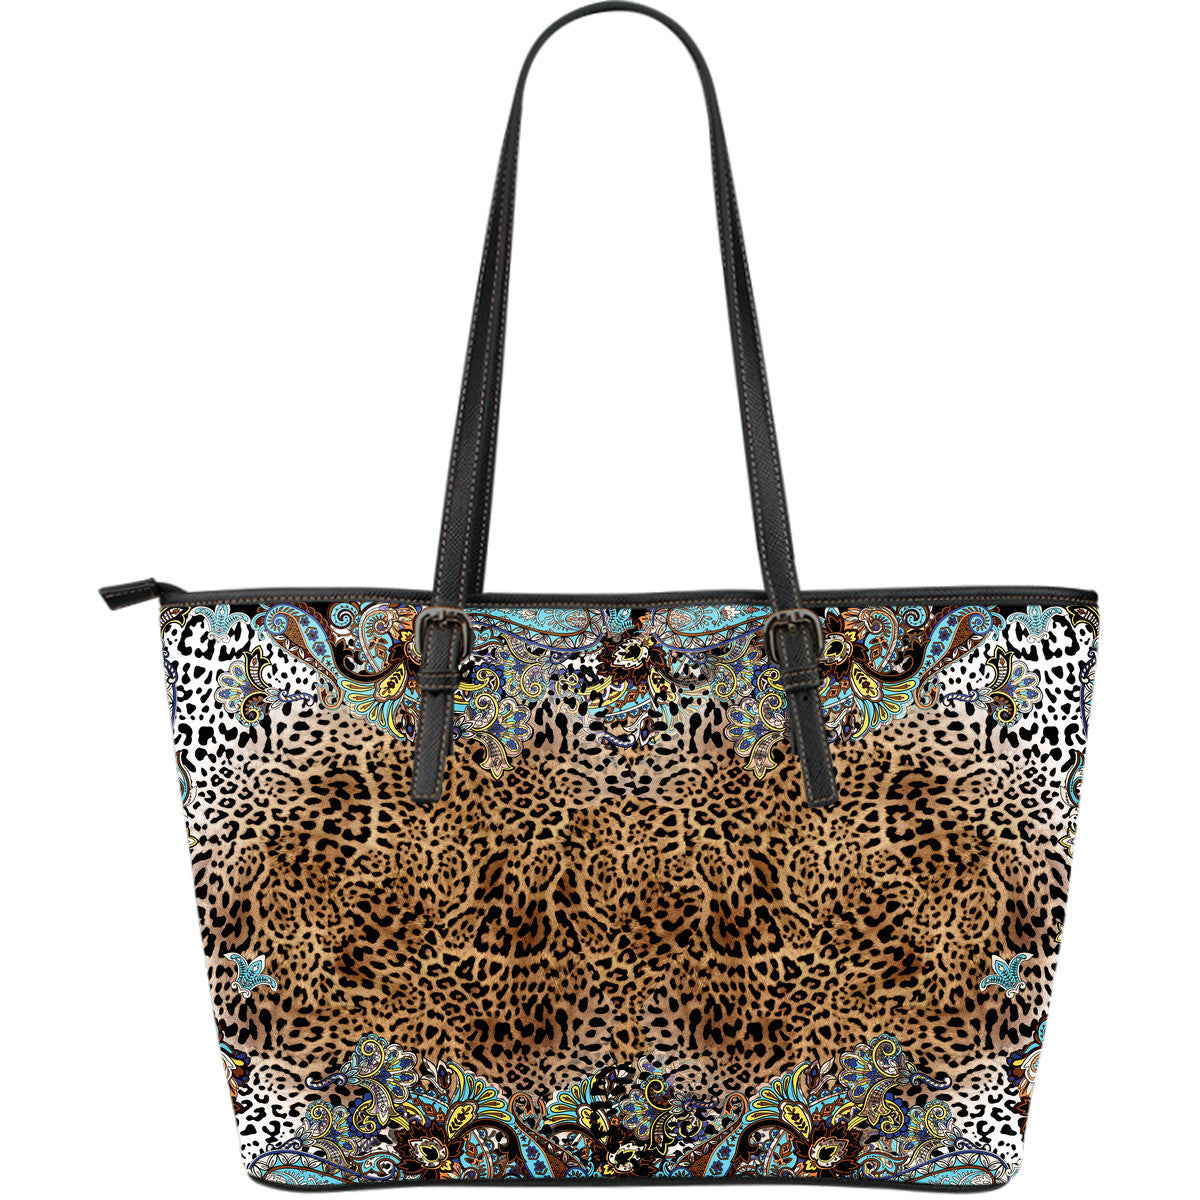 Tiger Lily Large Leather Tote Bag